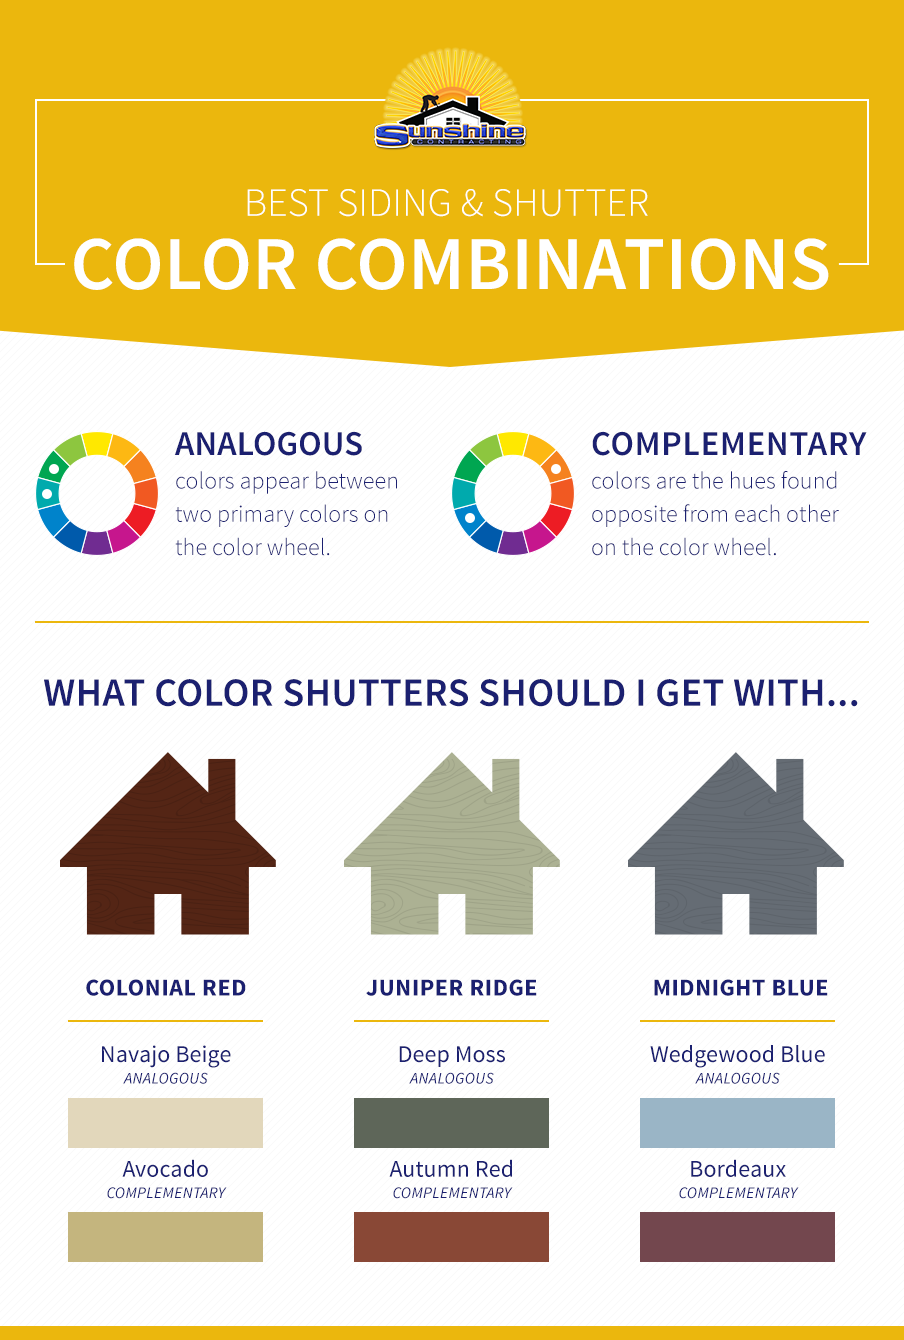 Best Siding and Shutter Color Combinations